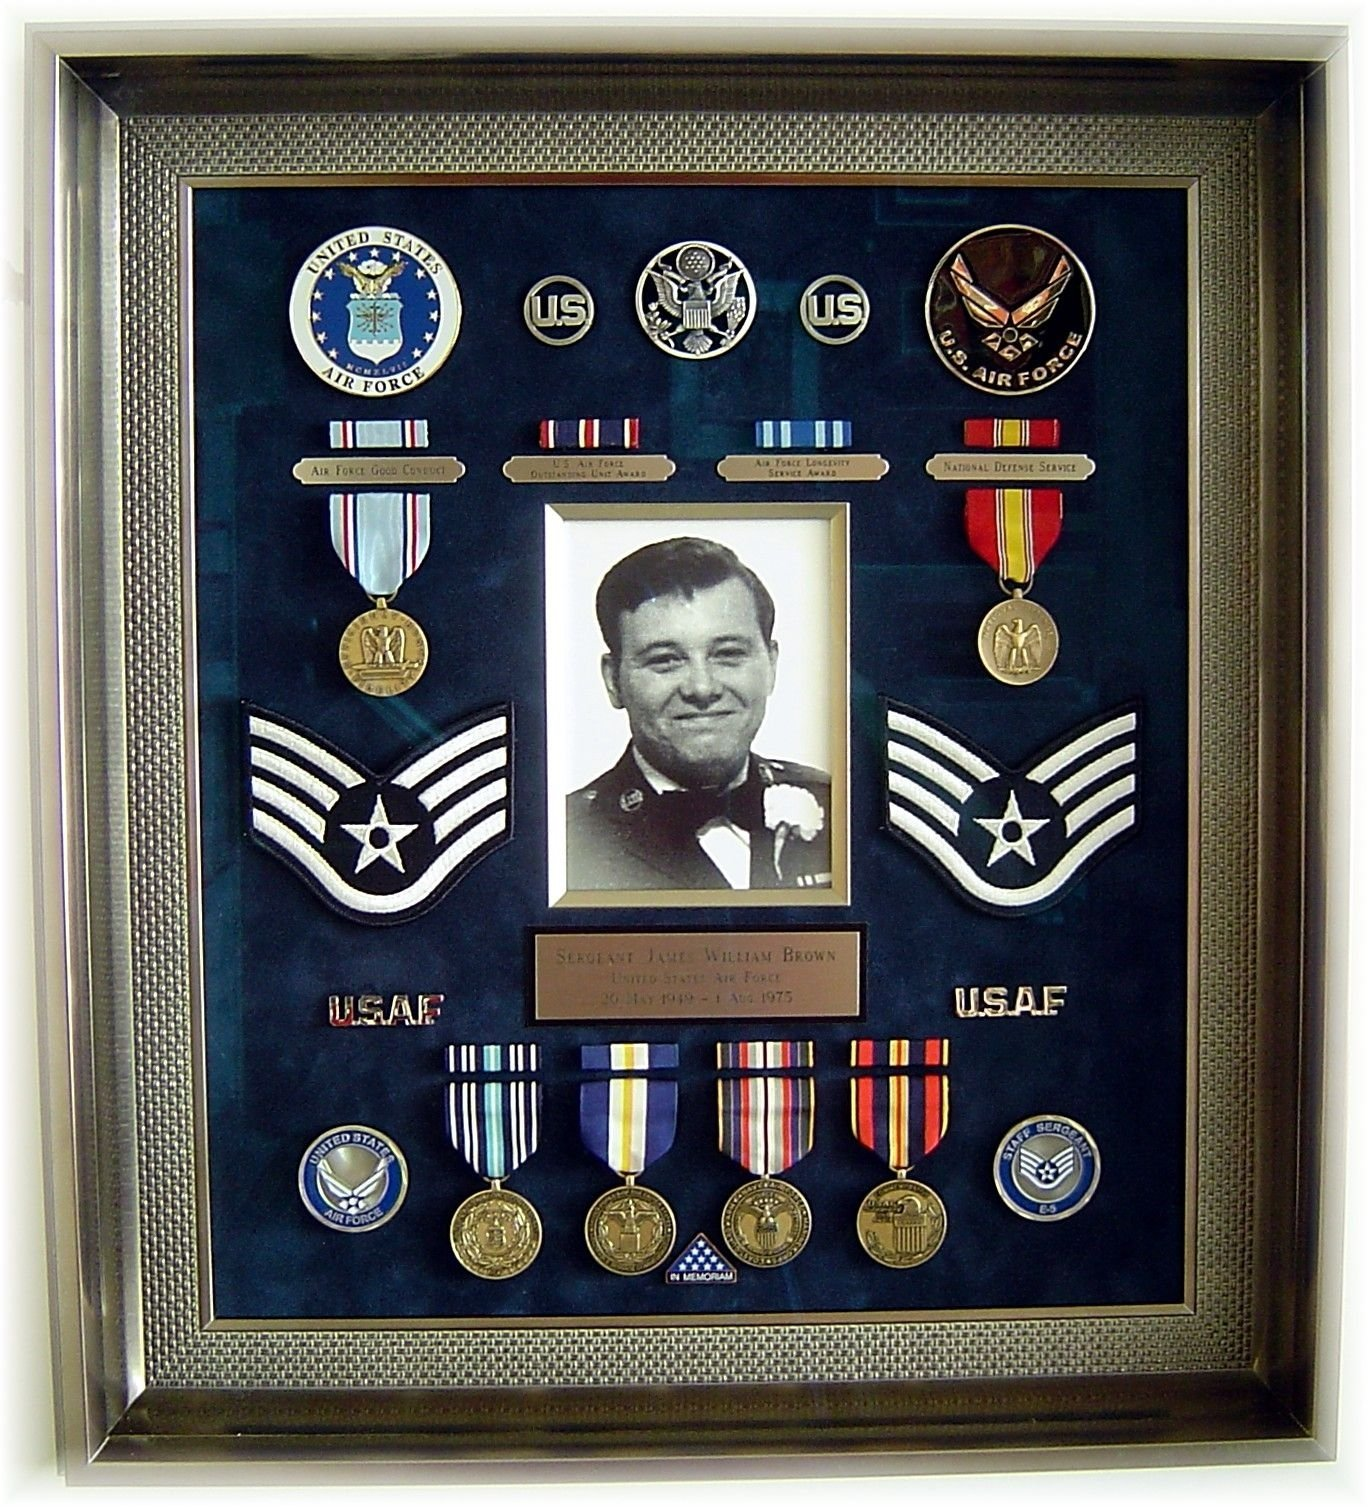 10 Trendy Air Force Shadow Box Ideas 20 shadow box ideas cute and creative displaying meaningful 2 2021